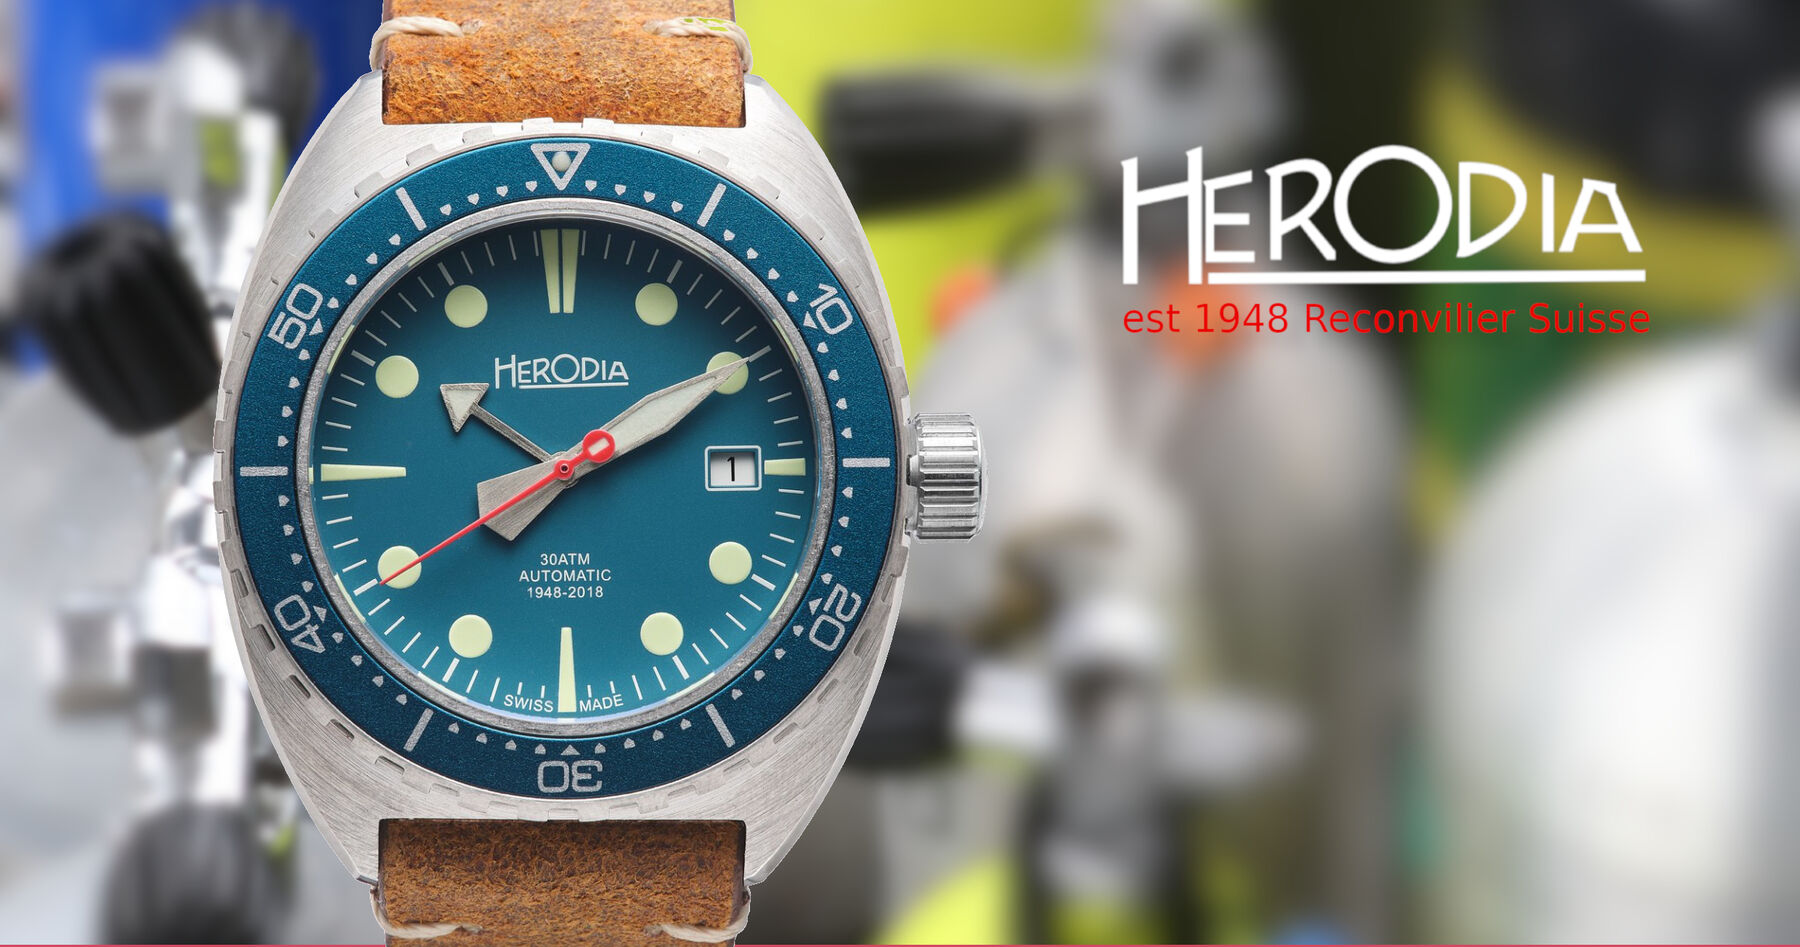 Herodia Watches